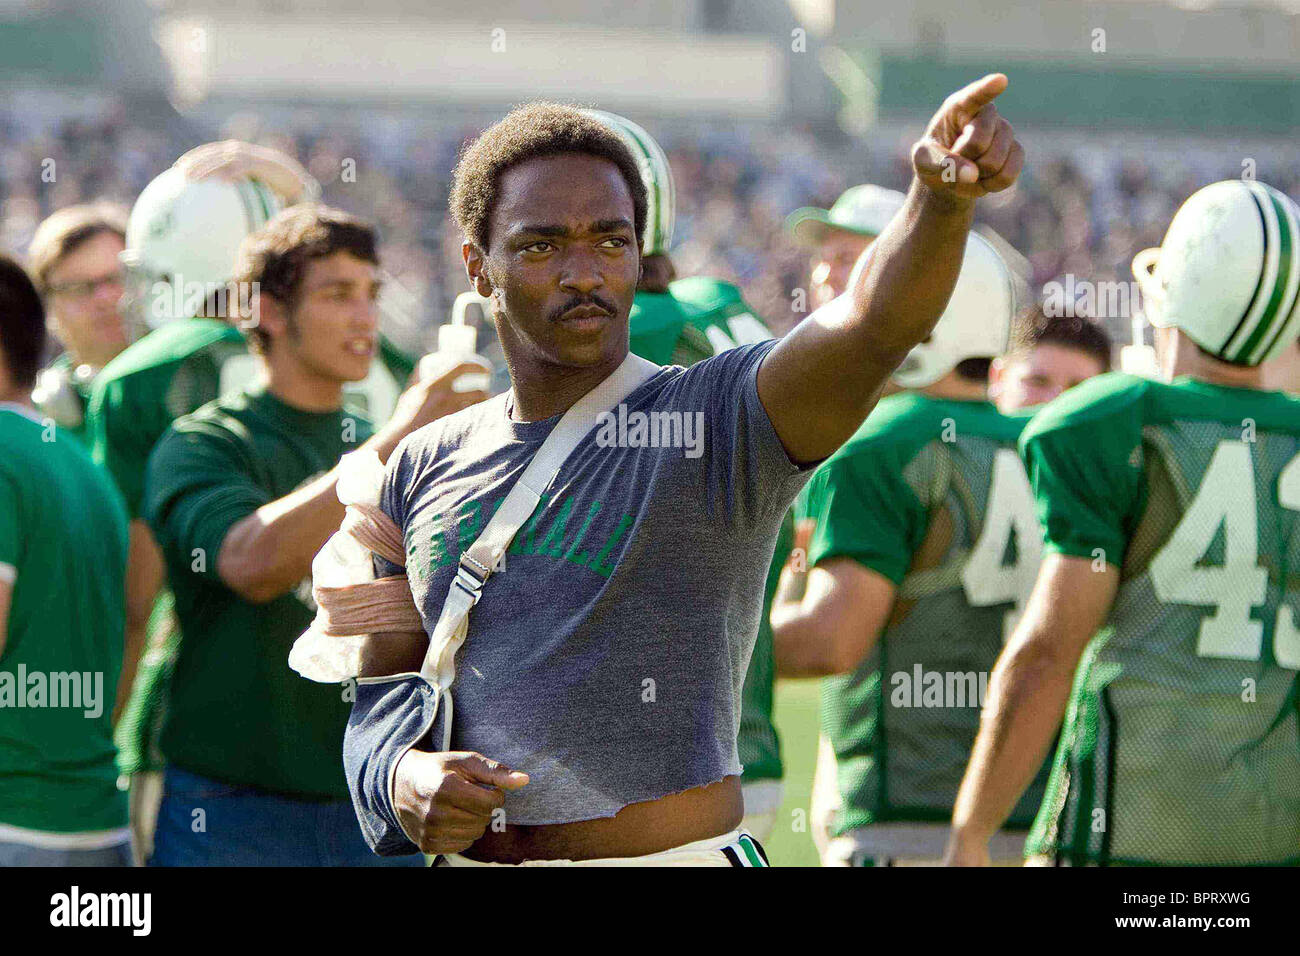 ANTHONY MACKIE WE ARE MARSHALL (2006) - Stock Image